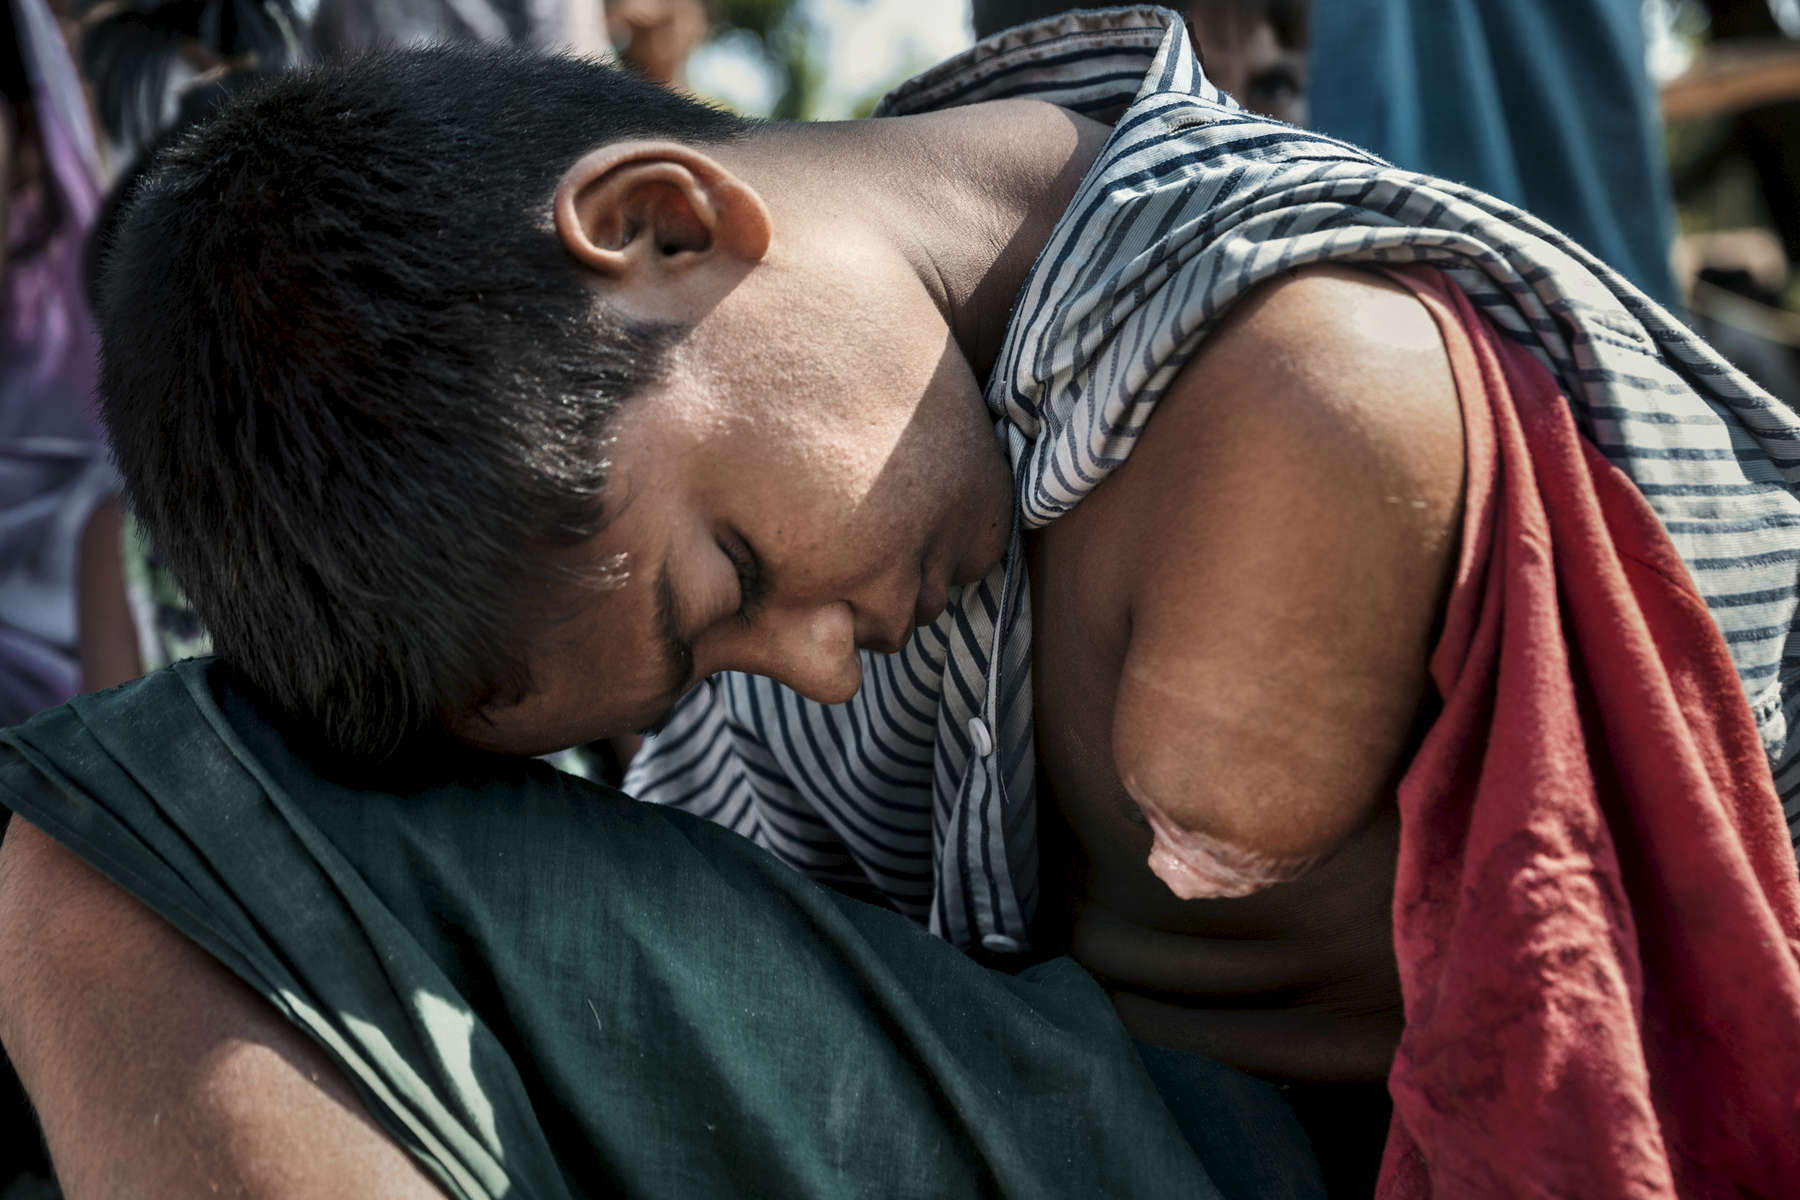 Orphan Mohammad Faisal , age 13, is exhausted after arriving in Bangladesh the night before, rests while he and his siblings wait for transport from the registration center. His story: He fled his village, Gudam Para two months ago when Burmese military attacked and set fire to their home. He was shot in the arm and lost his family during the escape. He was running away alone when he was shot, later the wound became infected and his arm was amputated by his uncle in order to save his life.